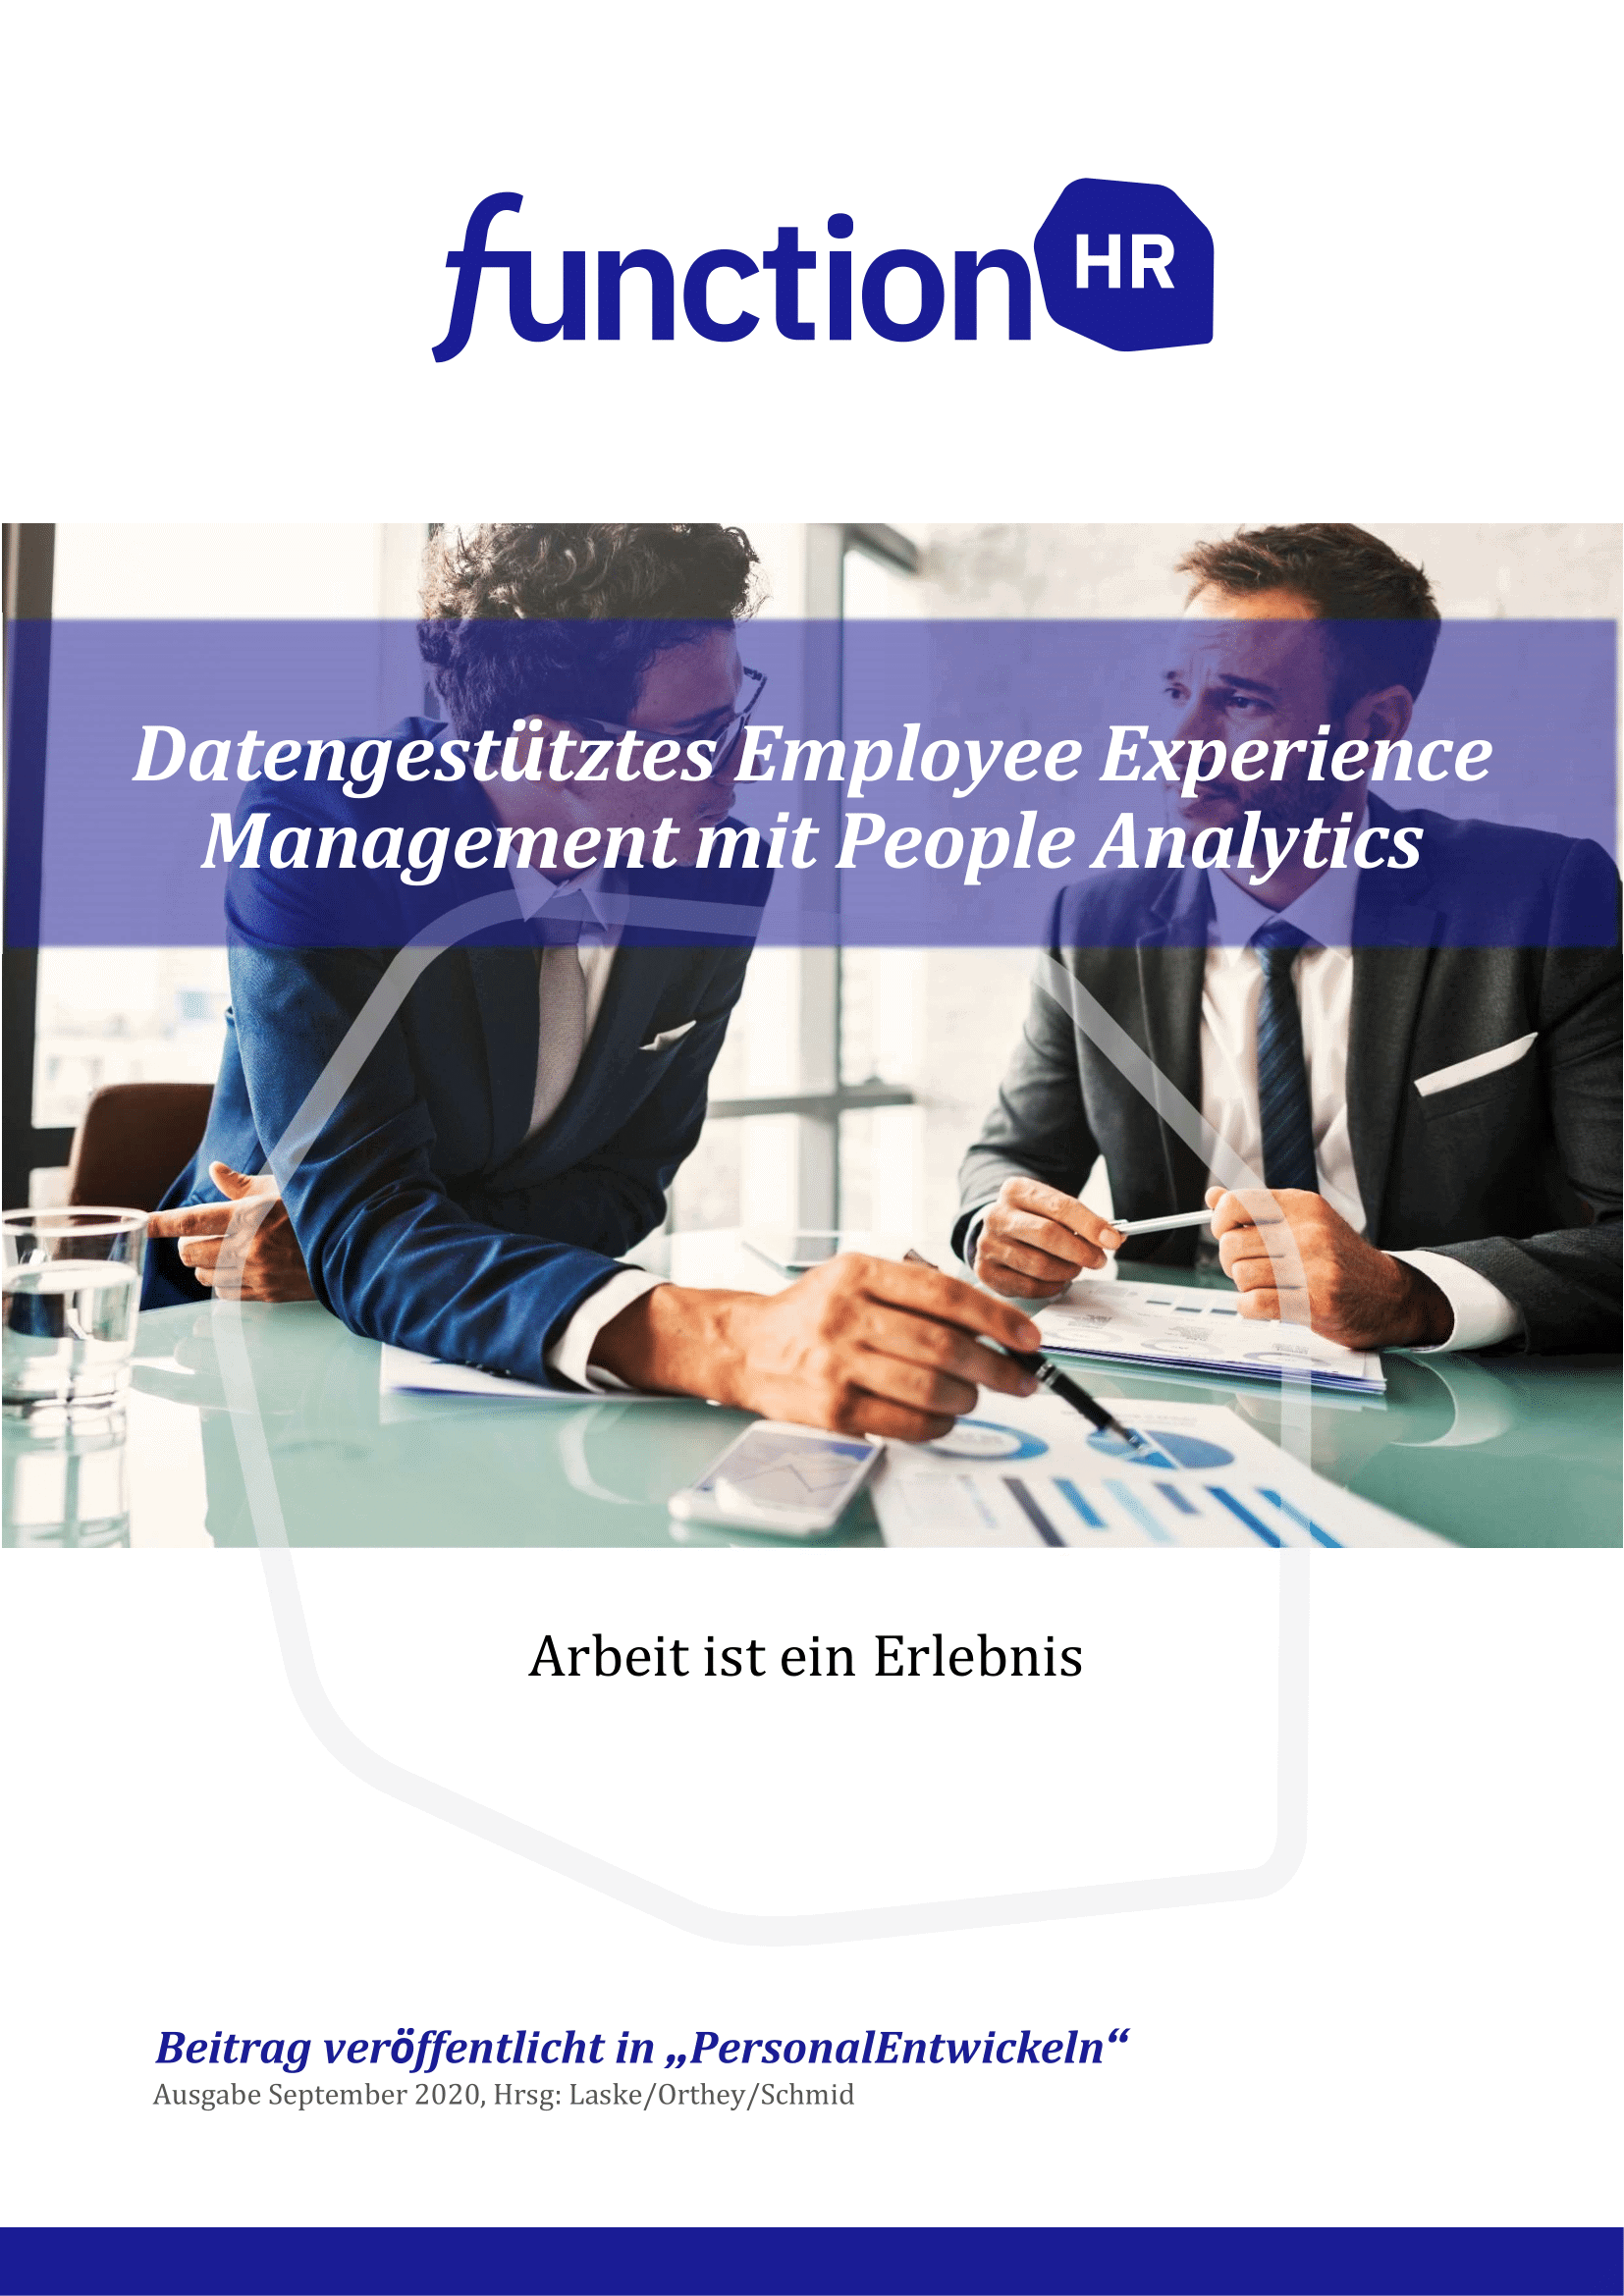 Datengestütztes Employee Experience Management mit People Analytics